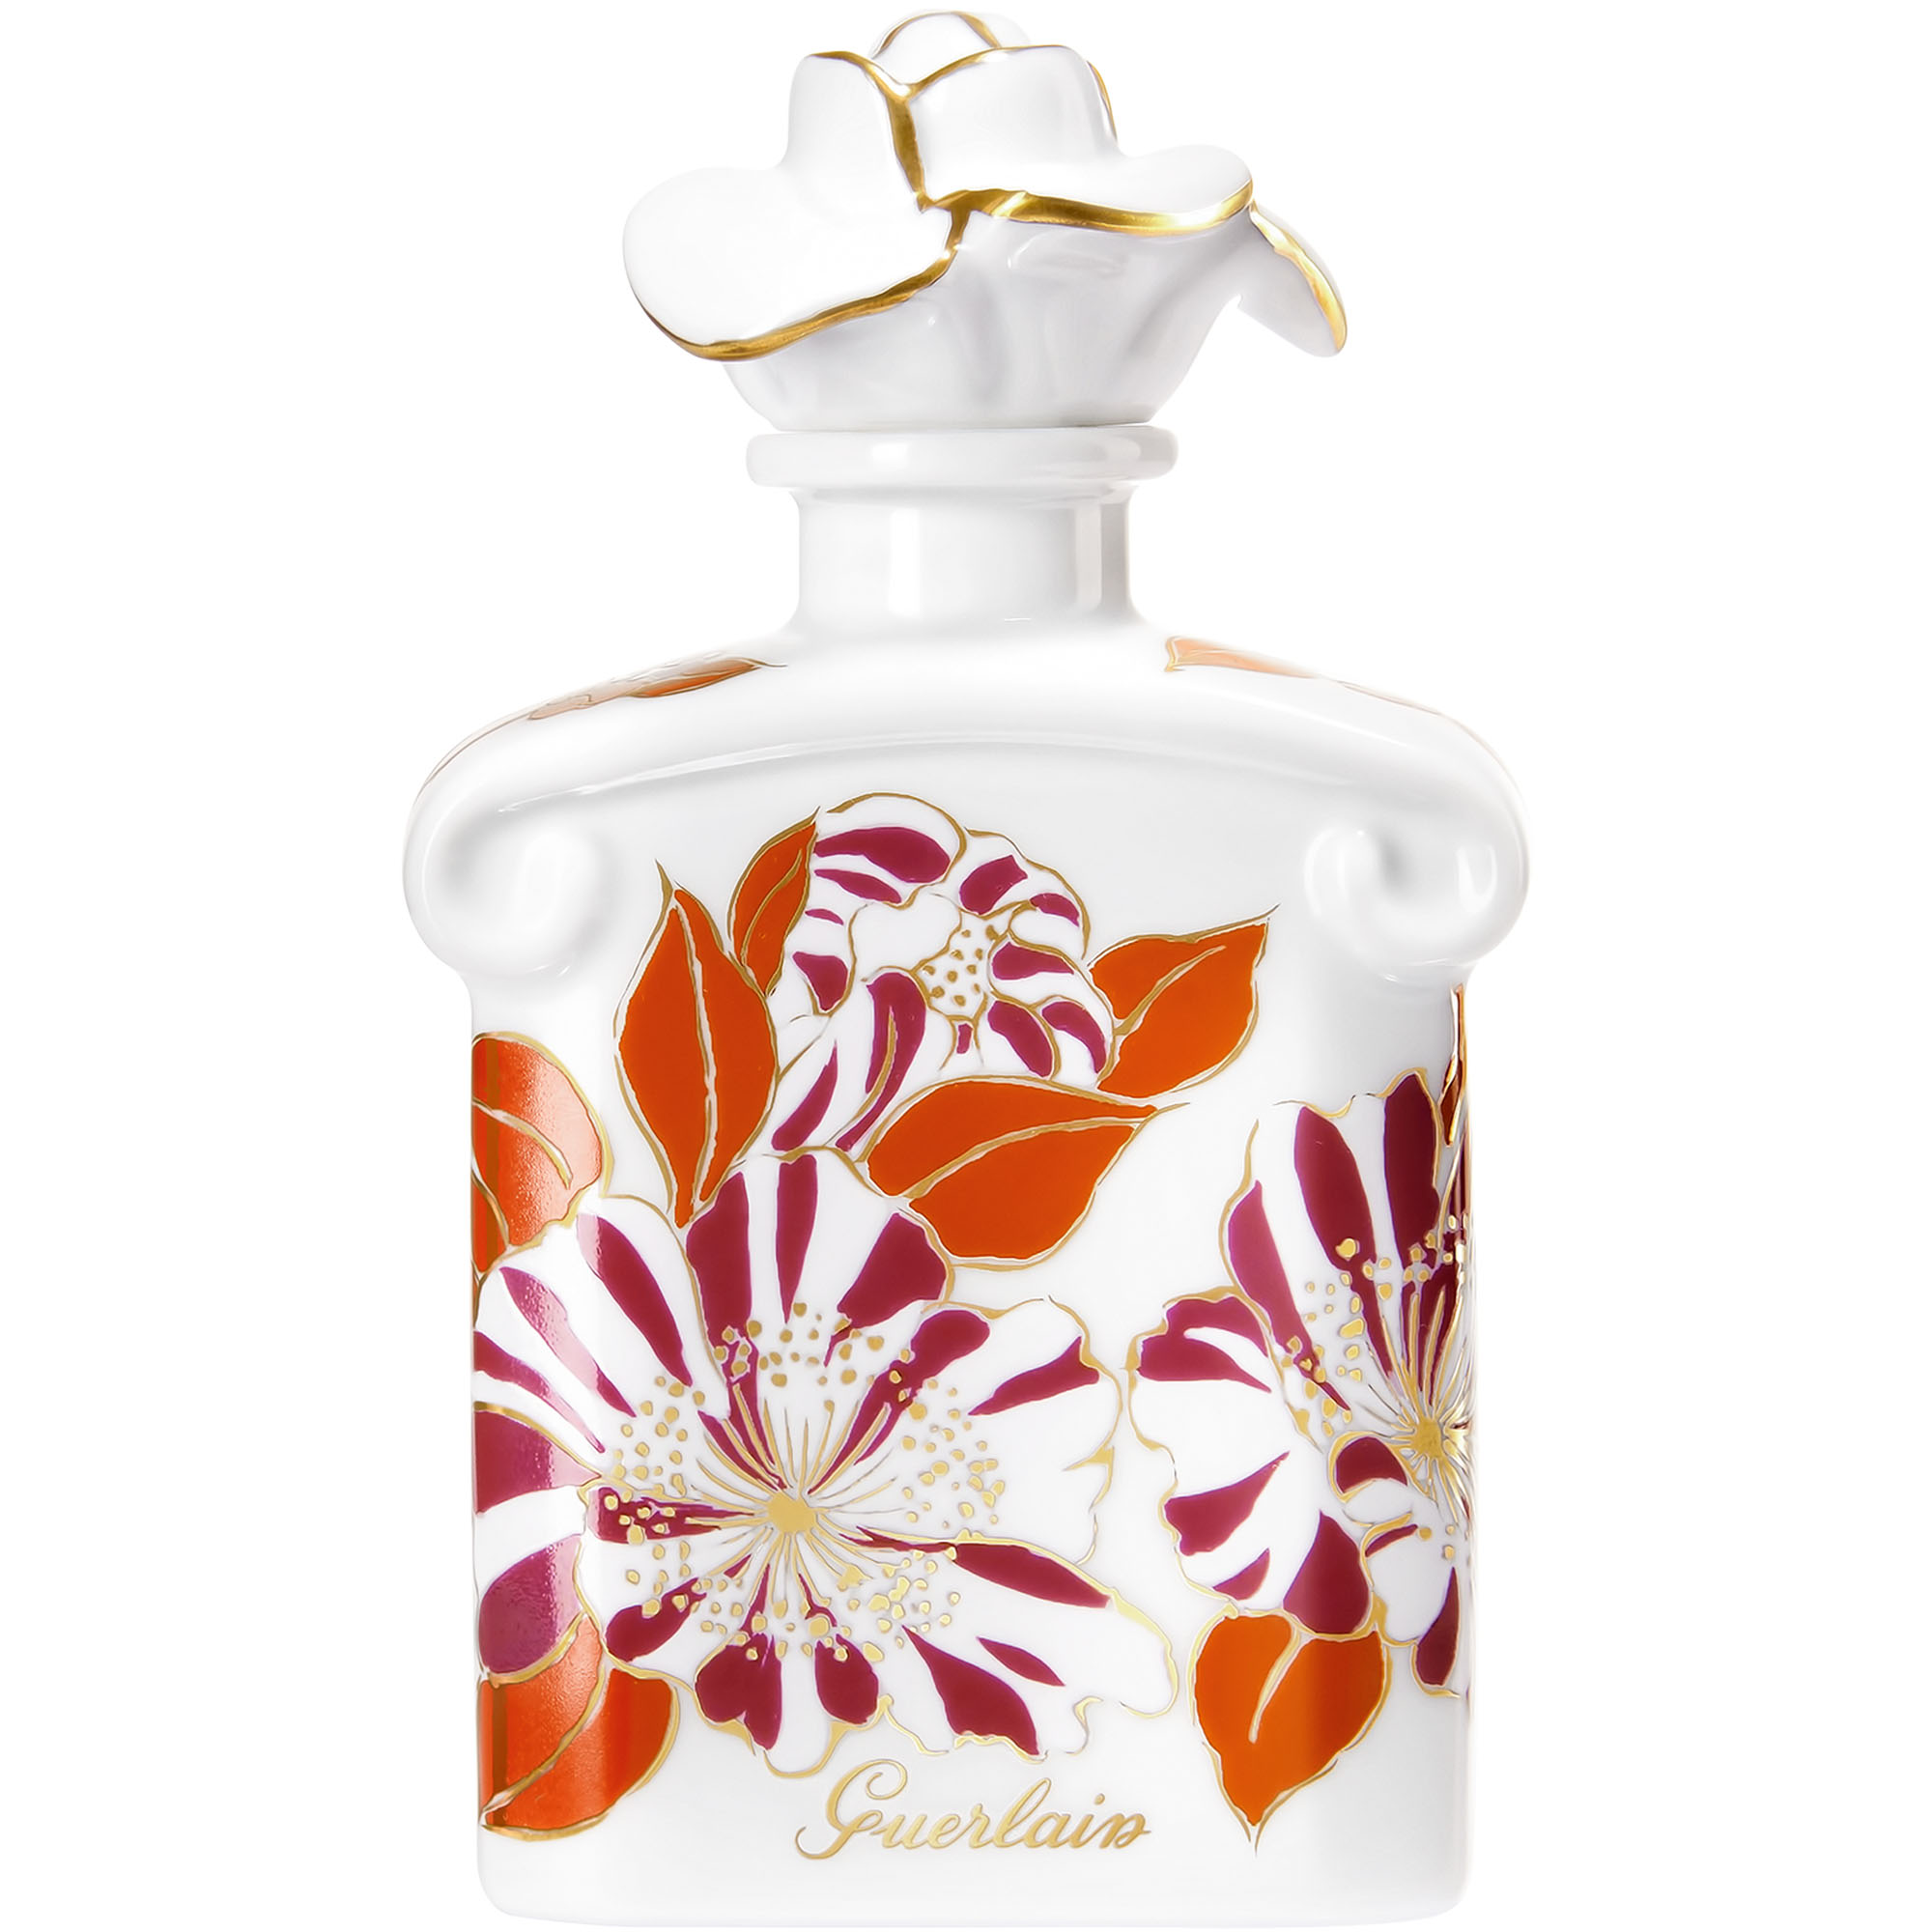 Guerlain Fall Flowers Porcelain Edition 2017 bottle